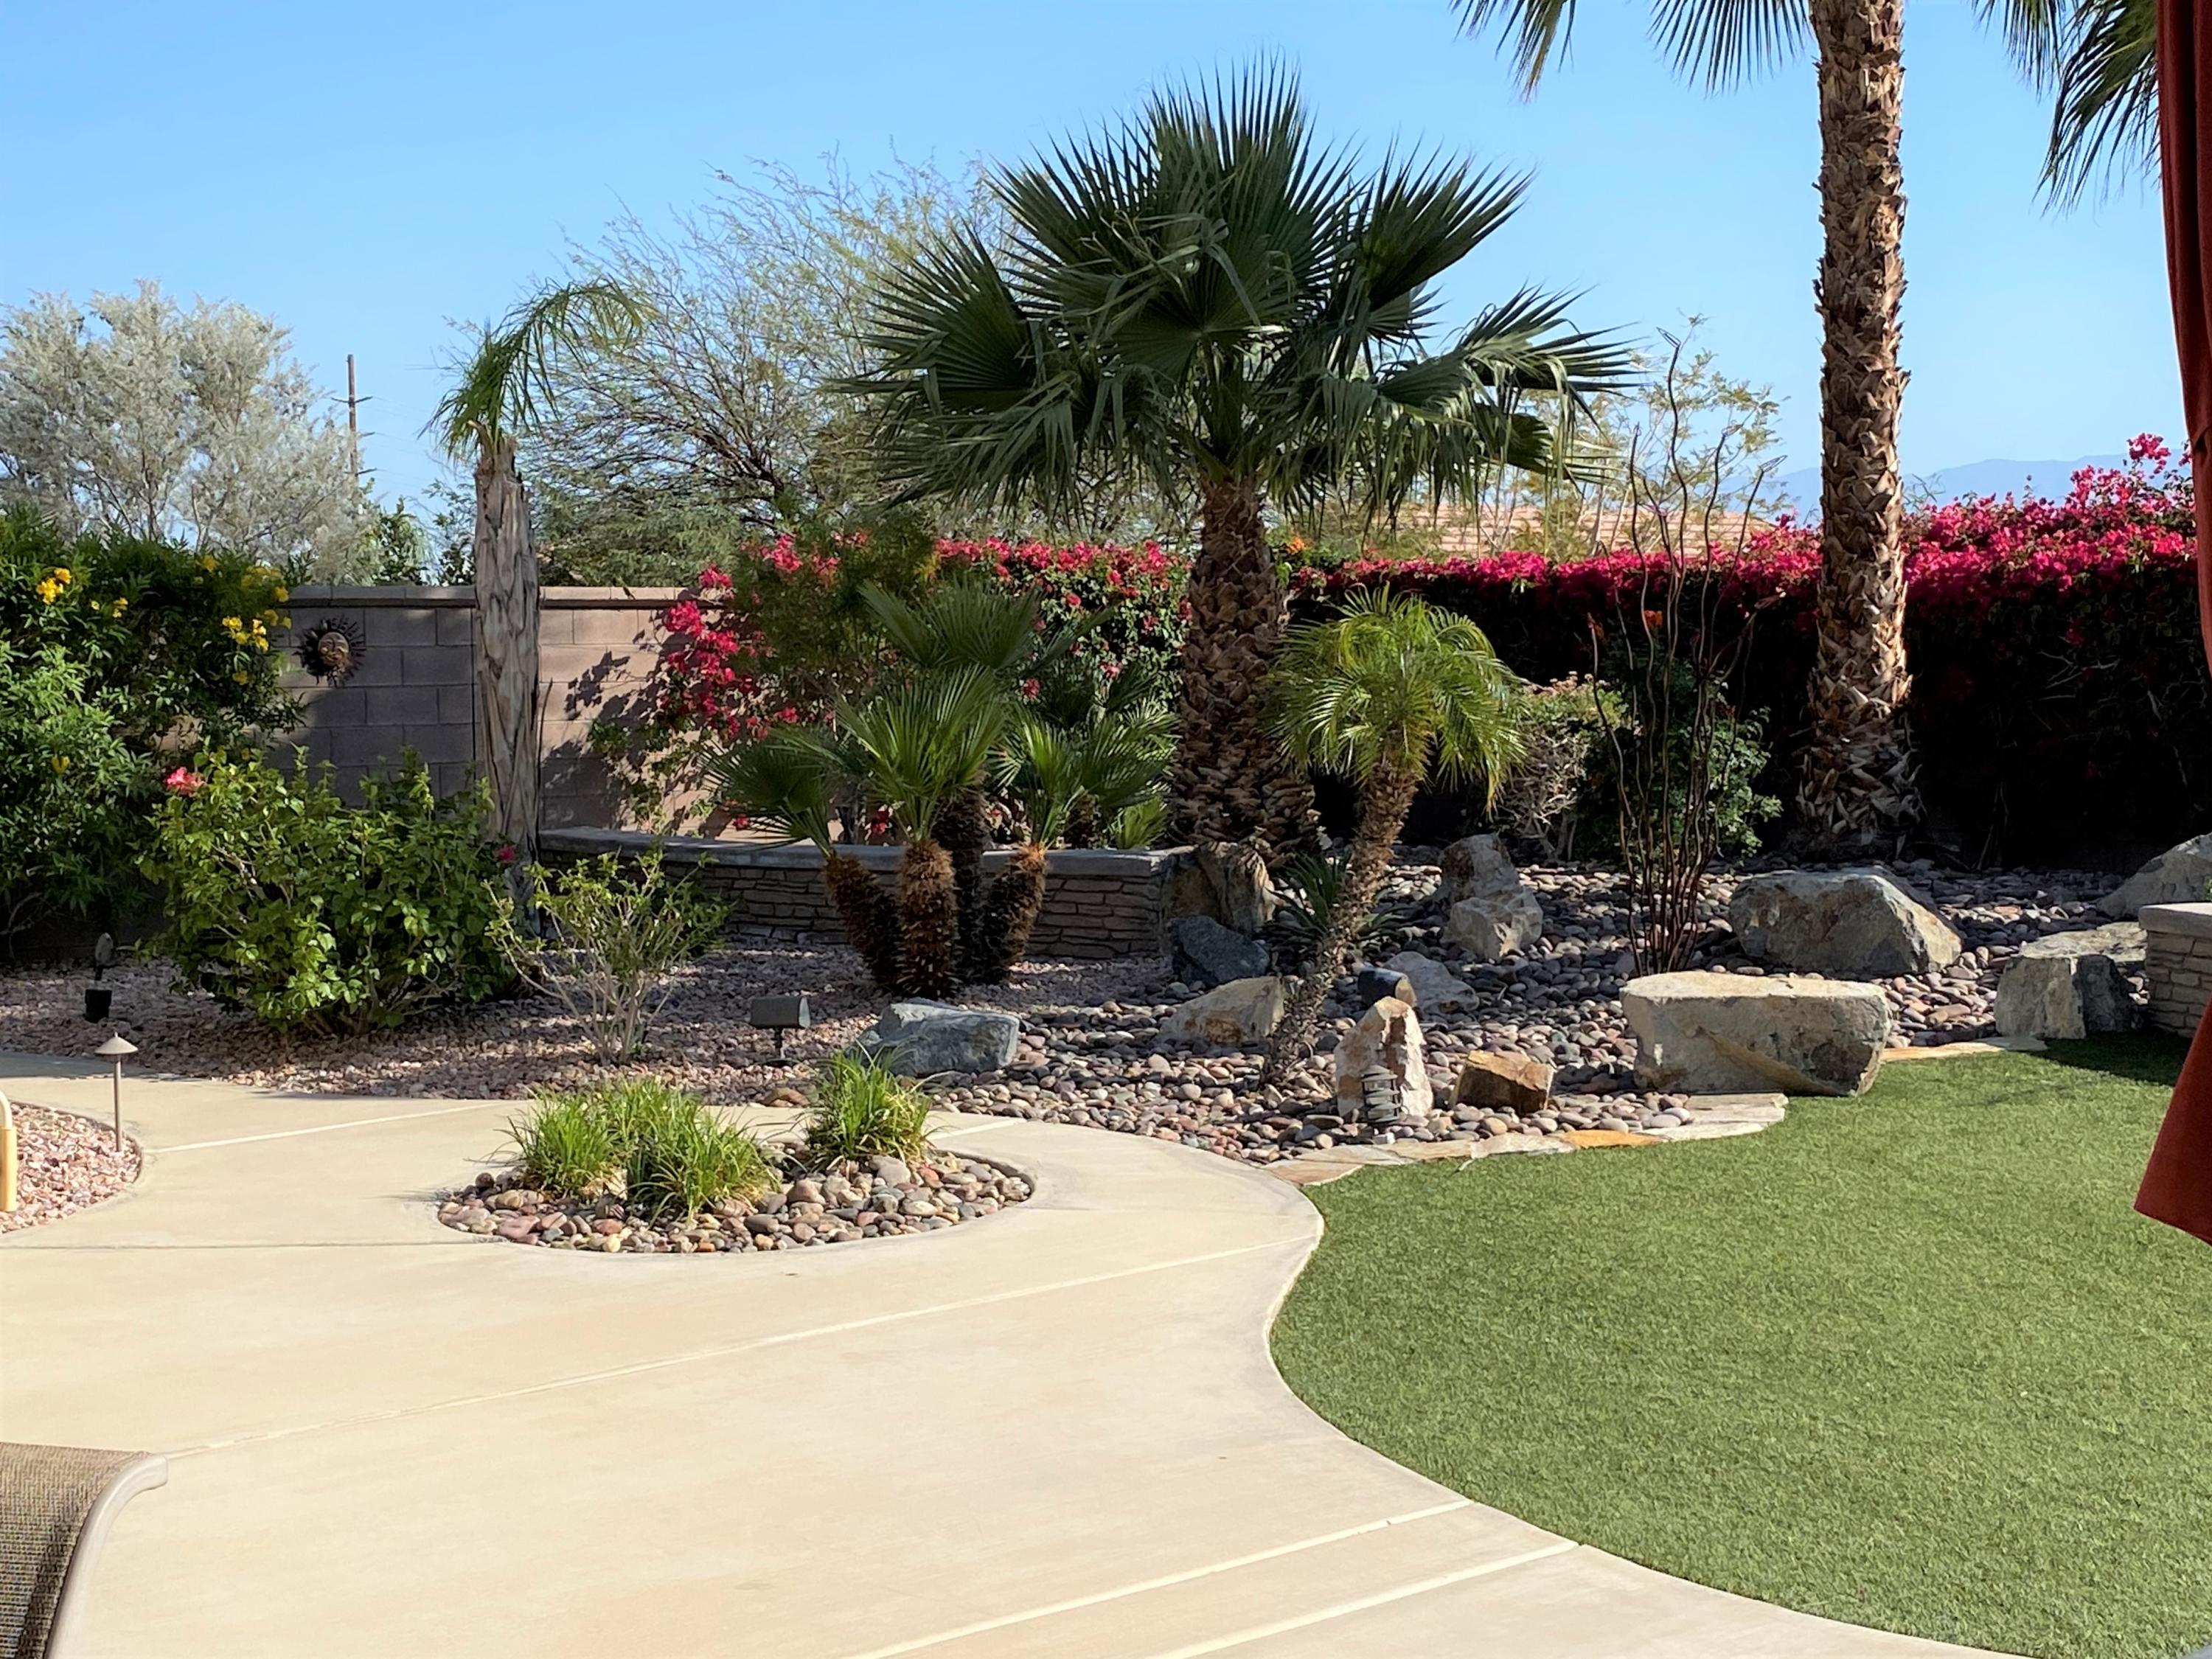 78965 Falsetto Drive, Palm Desert, California 92211, 2 Bedrooms Bedrooms, ,3 BathroomsBathrooms,Residential,For Sale,78965 Falsetto Drive,219042989